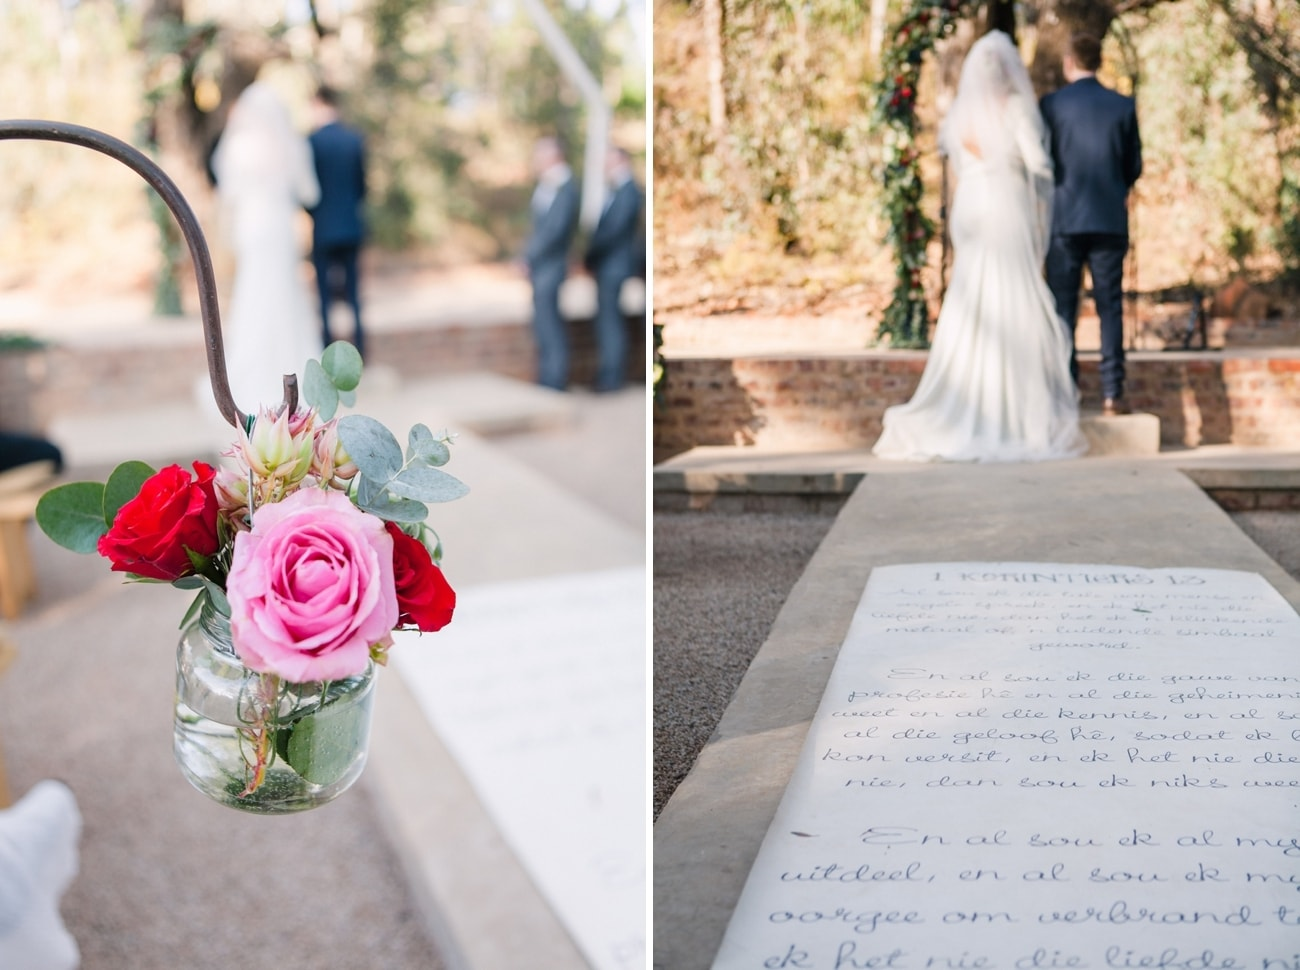 Ceremony Decor | Joyous Jewel Tone Winter Wedding | Credit: Dust and Dreams Photography